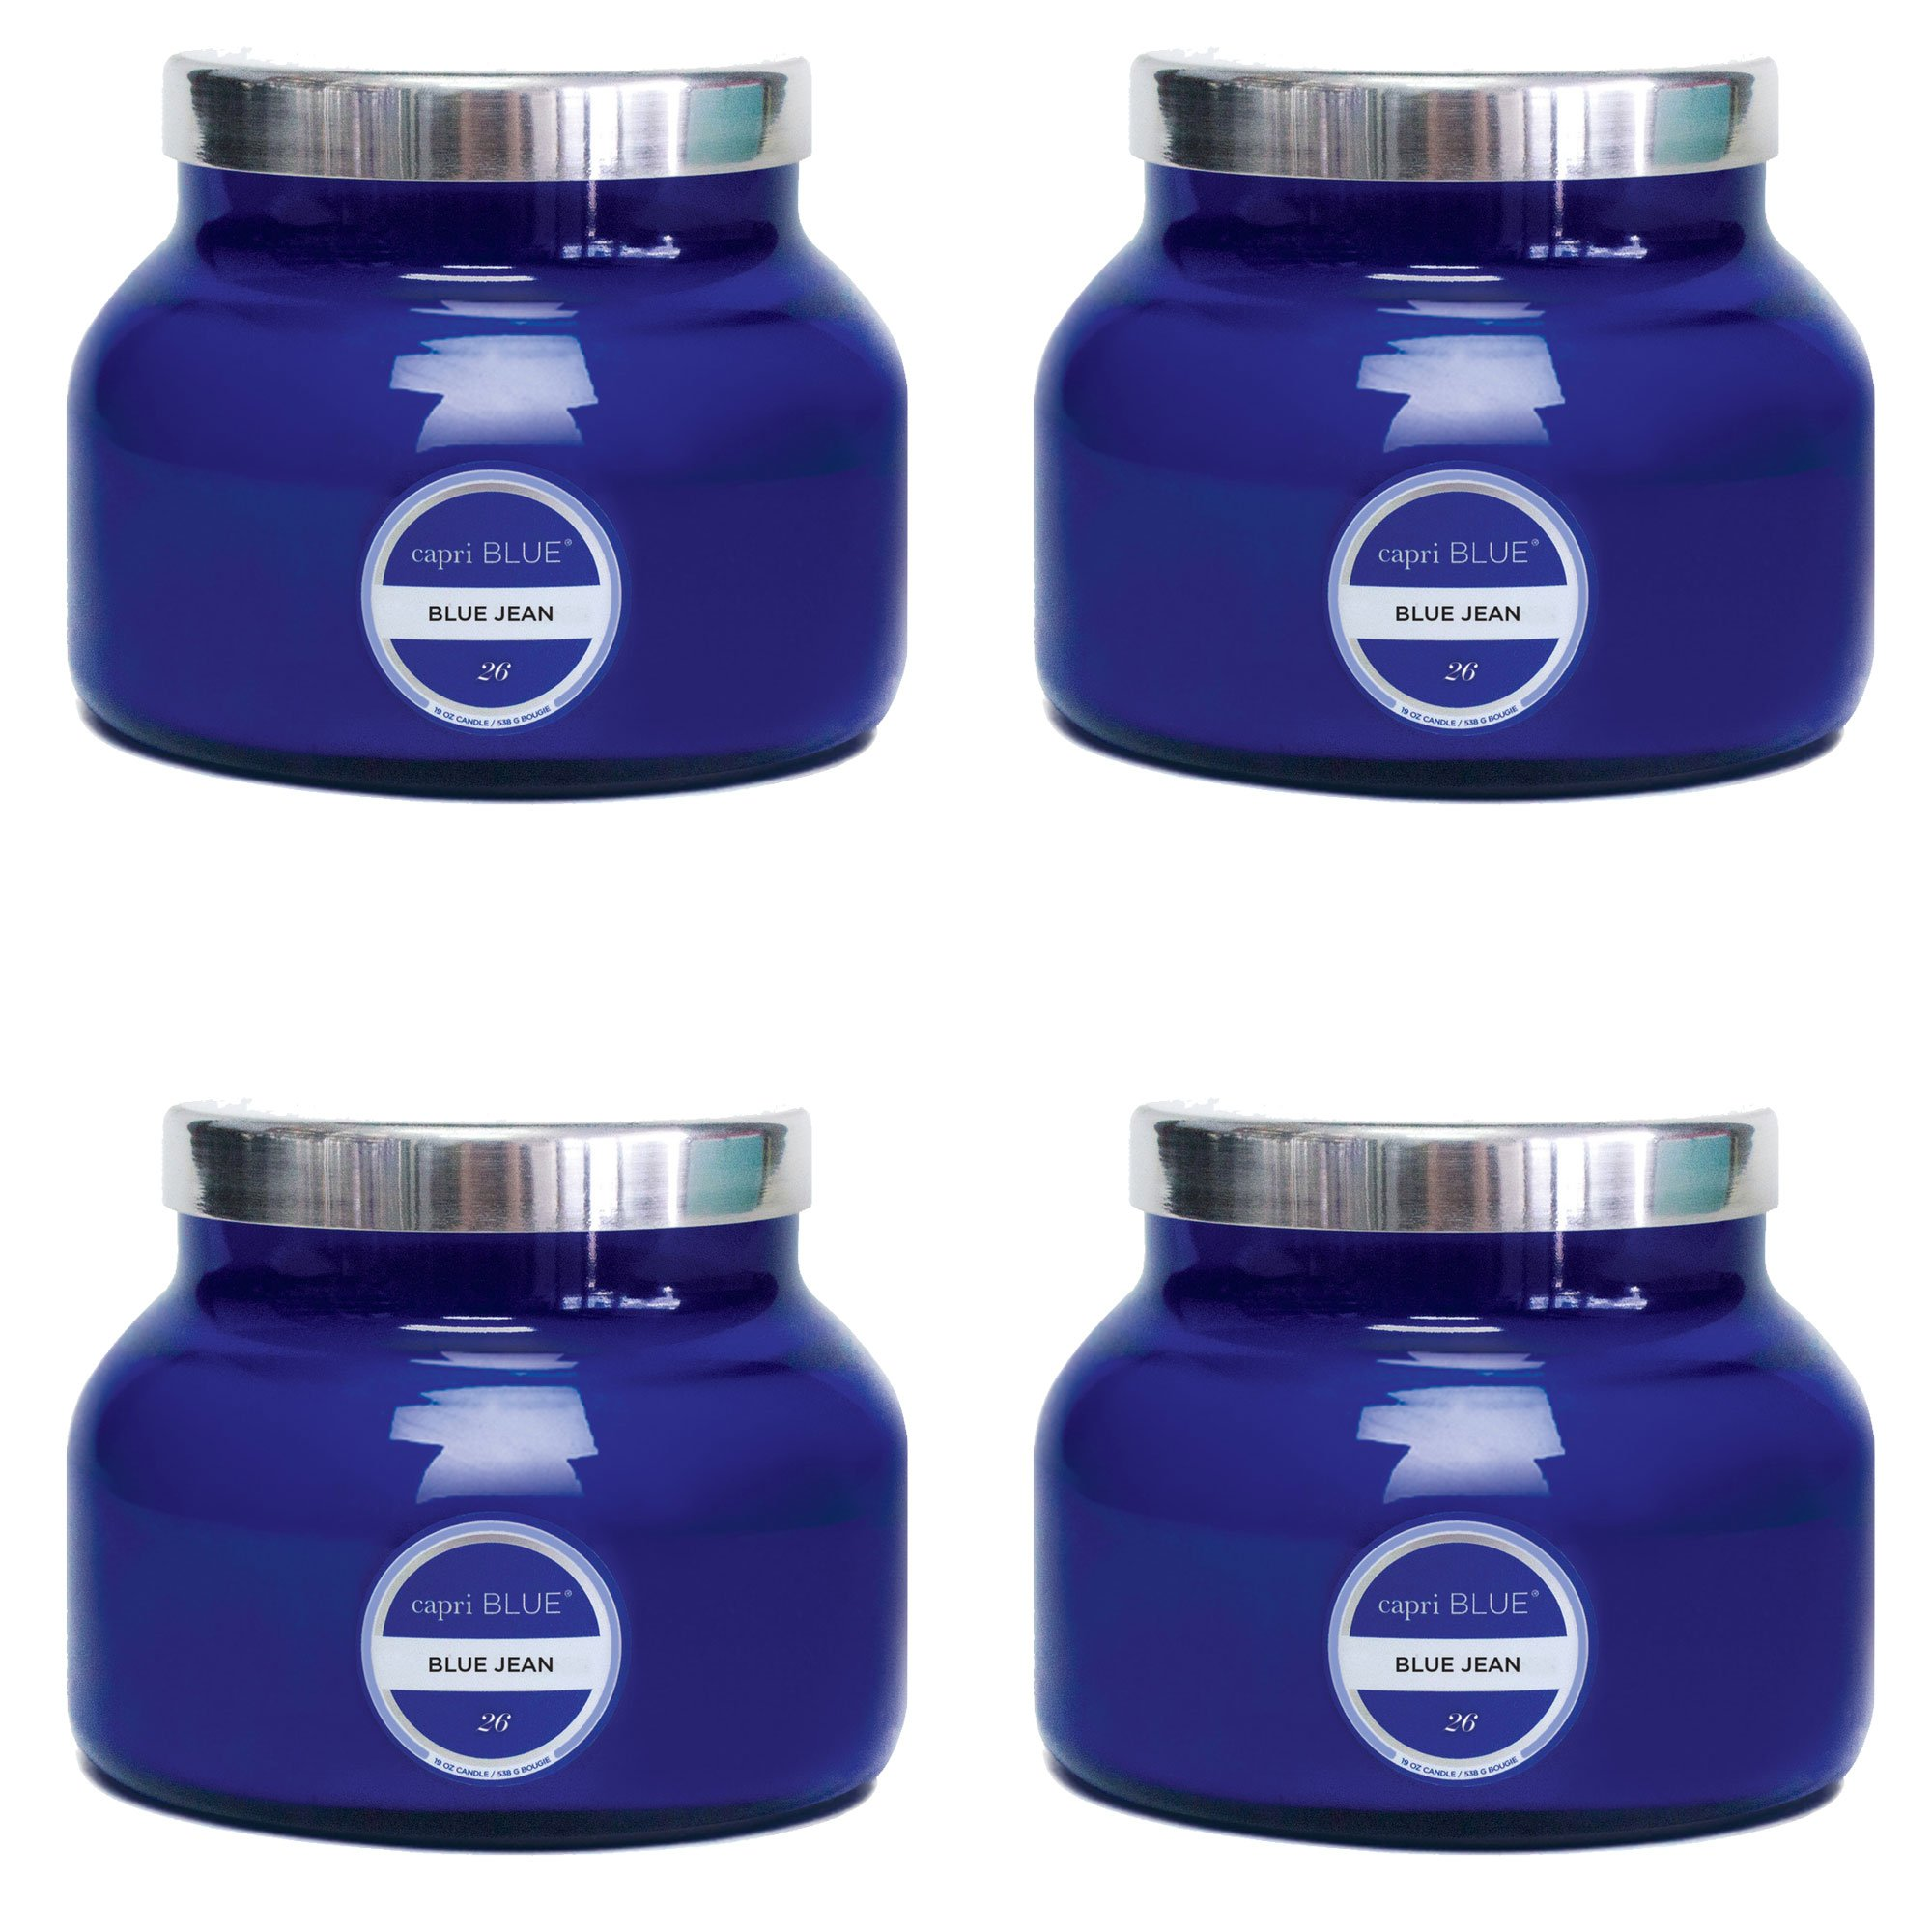 19 oz Capri Blue Signature Jar Blue Jean (4 pack) (blue) by Capri Blue